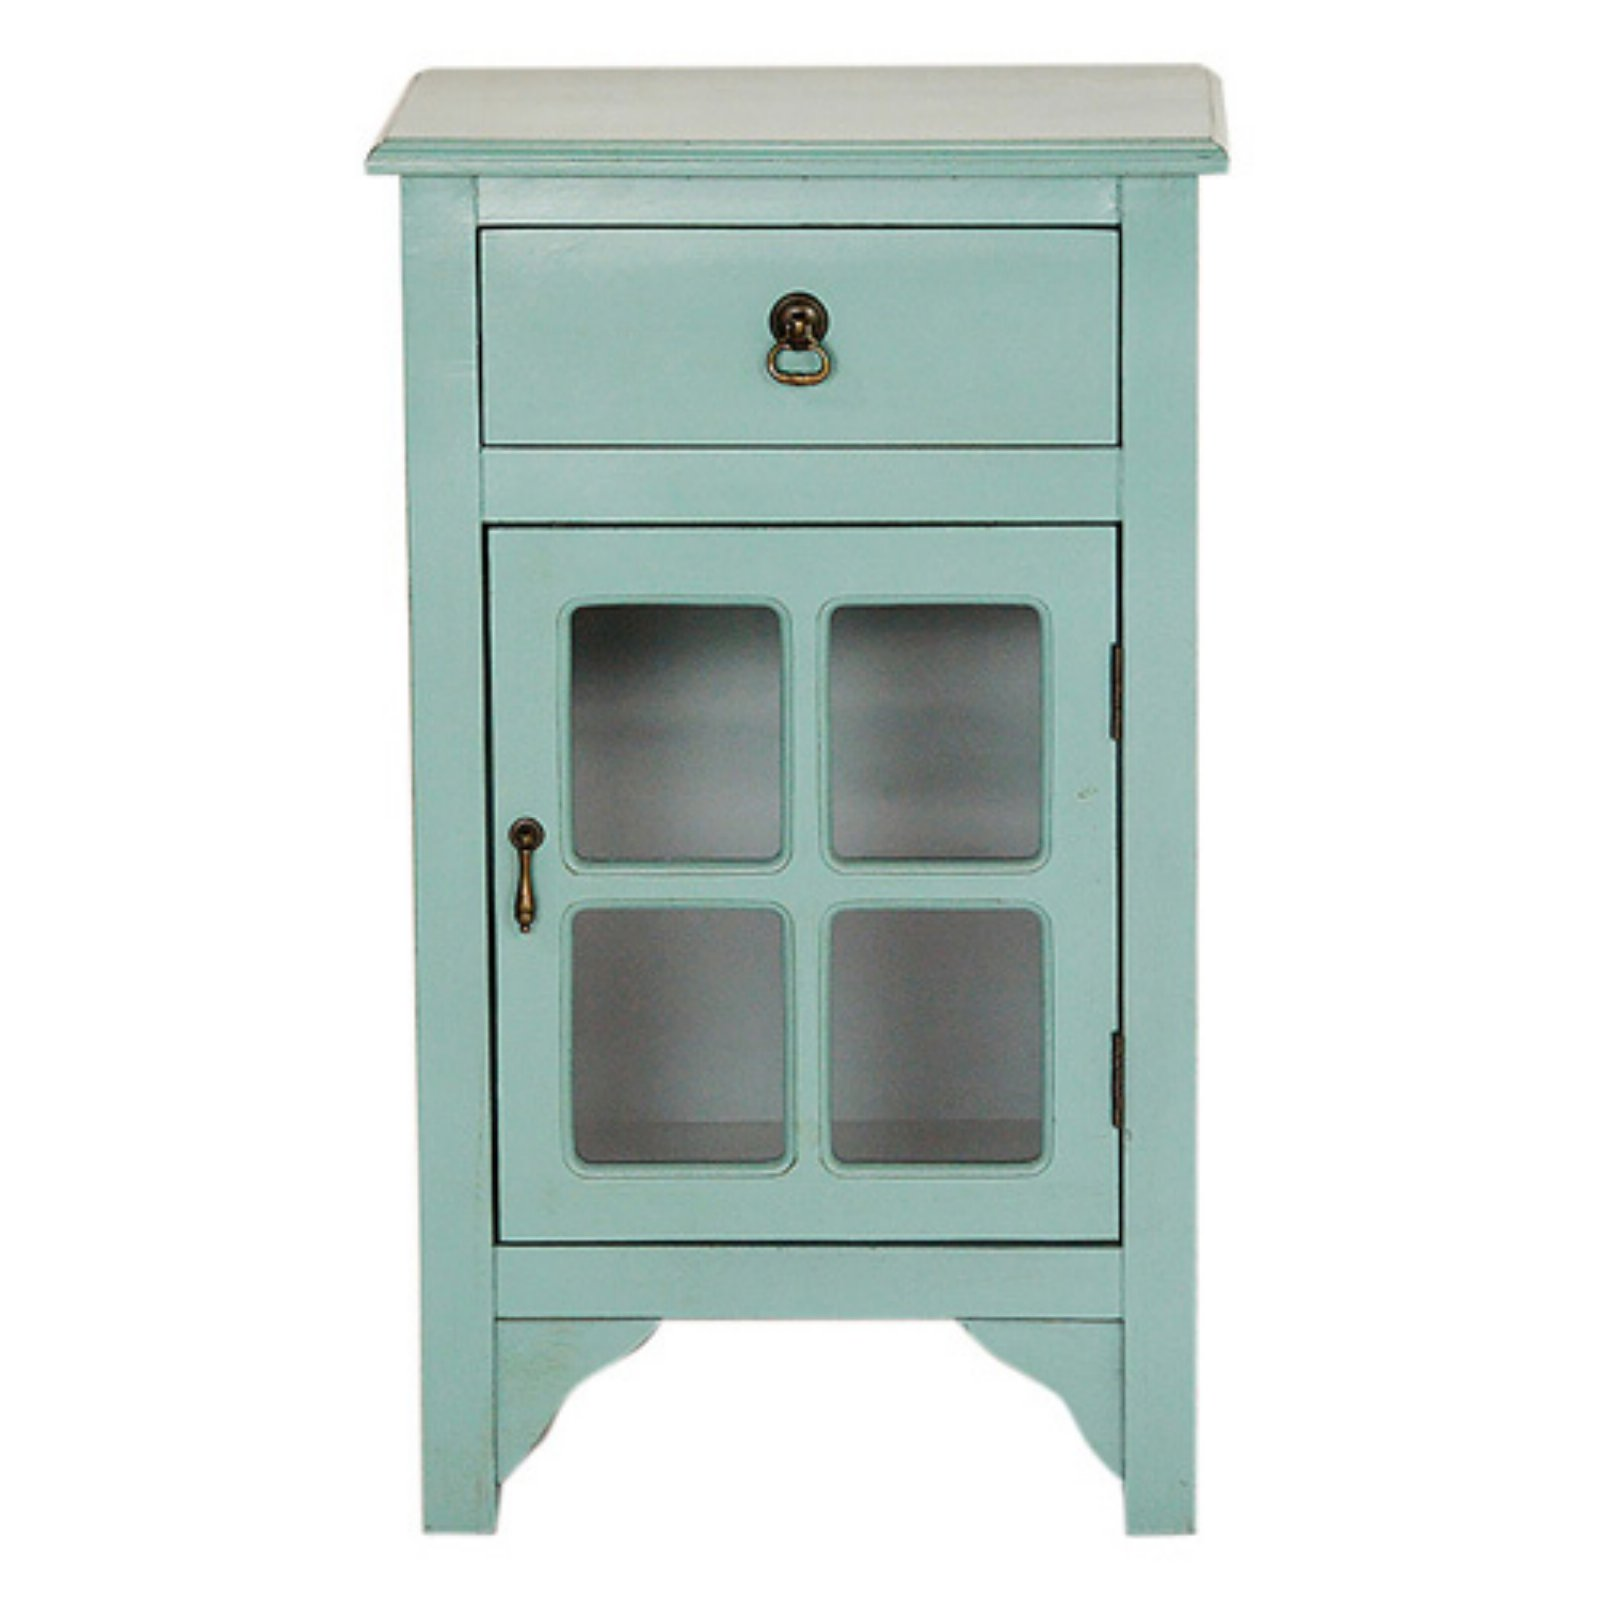 Heather Ann Creations Vivian 1 Drawer 1 Door Paned Glass Accent Cabinet